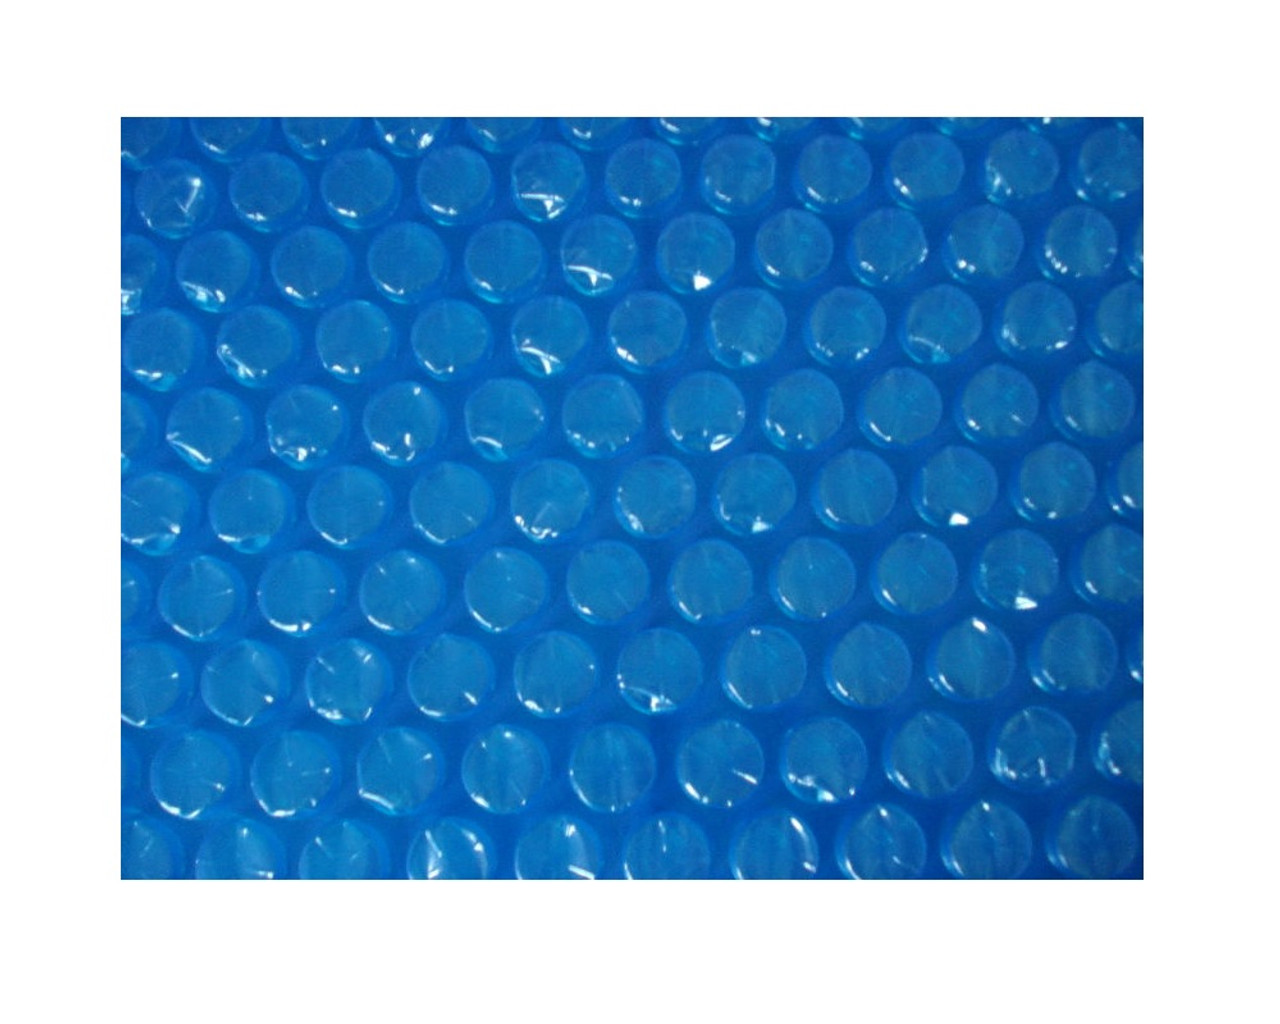 Jacuzzi Pool Covers 28 Ft Round Heat Wave Solar Blanket Swimming Pool Cover Blue 31520748